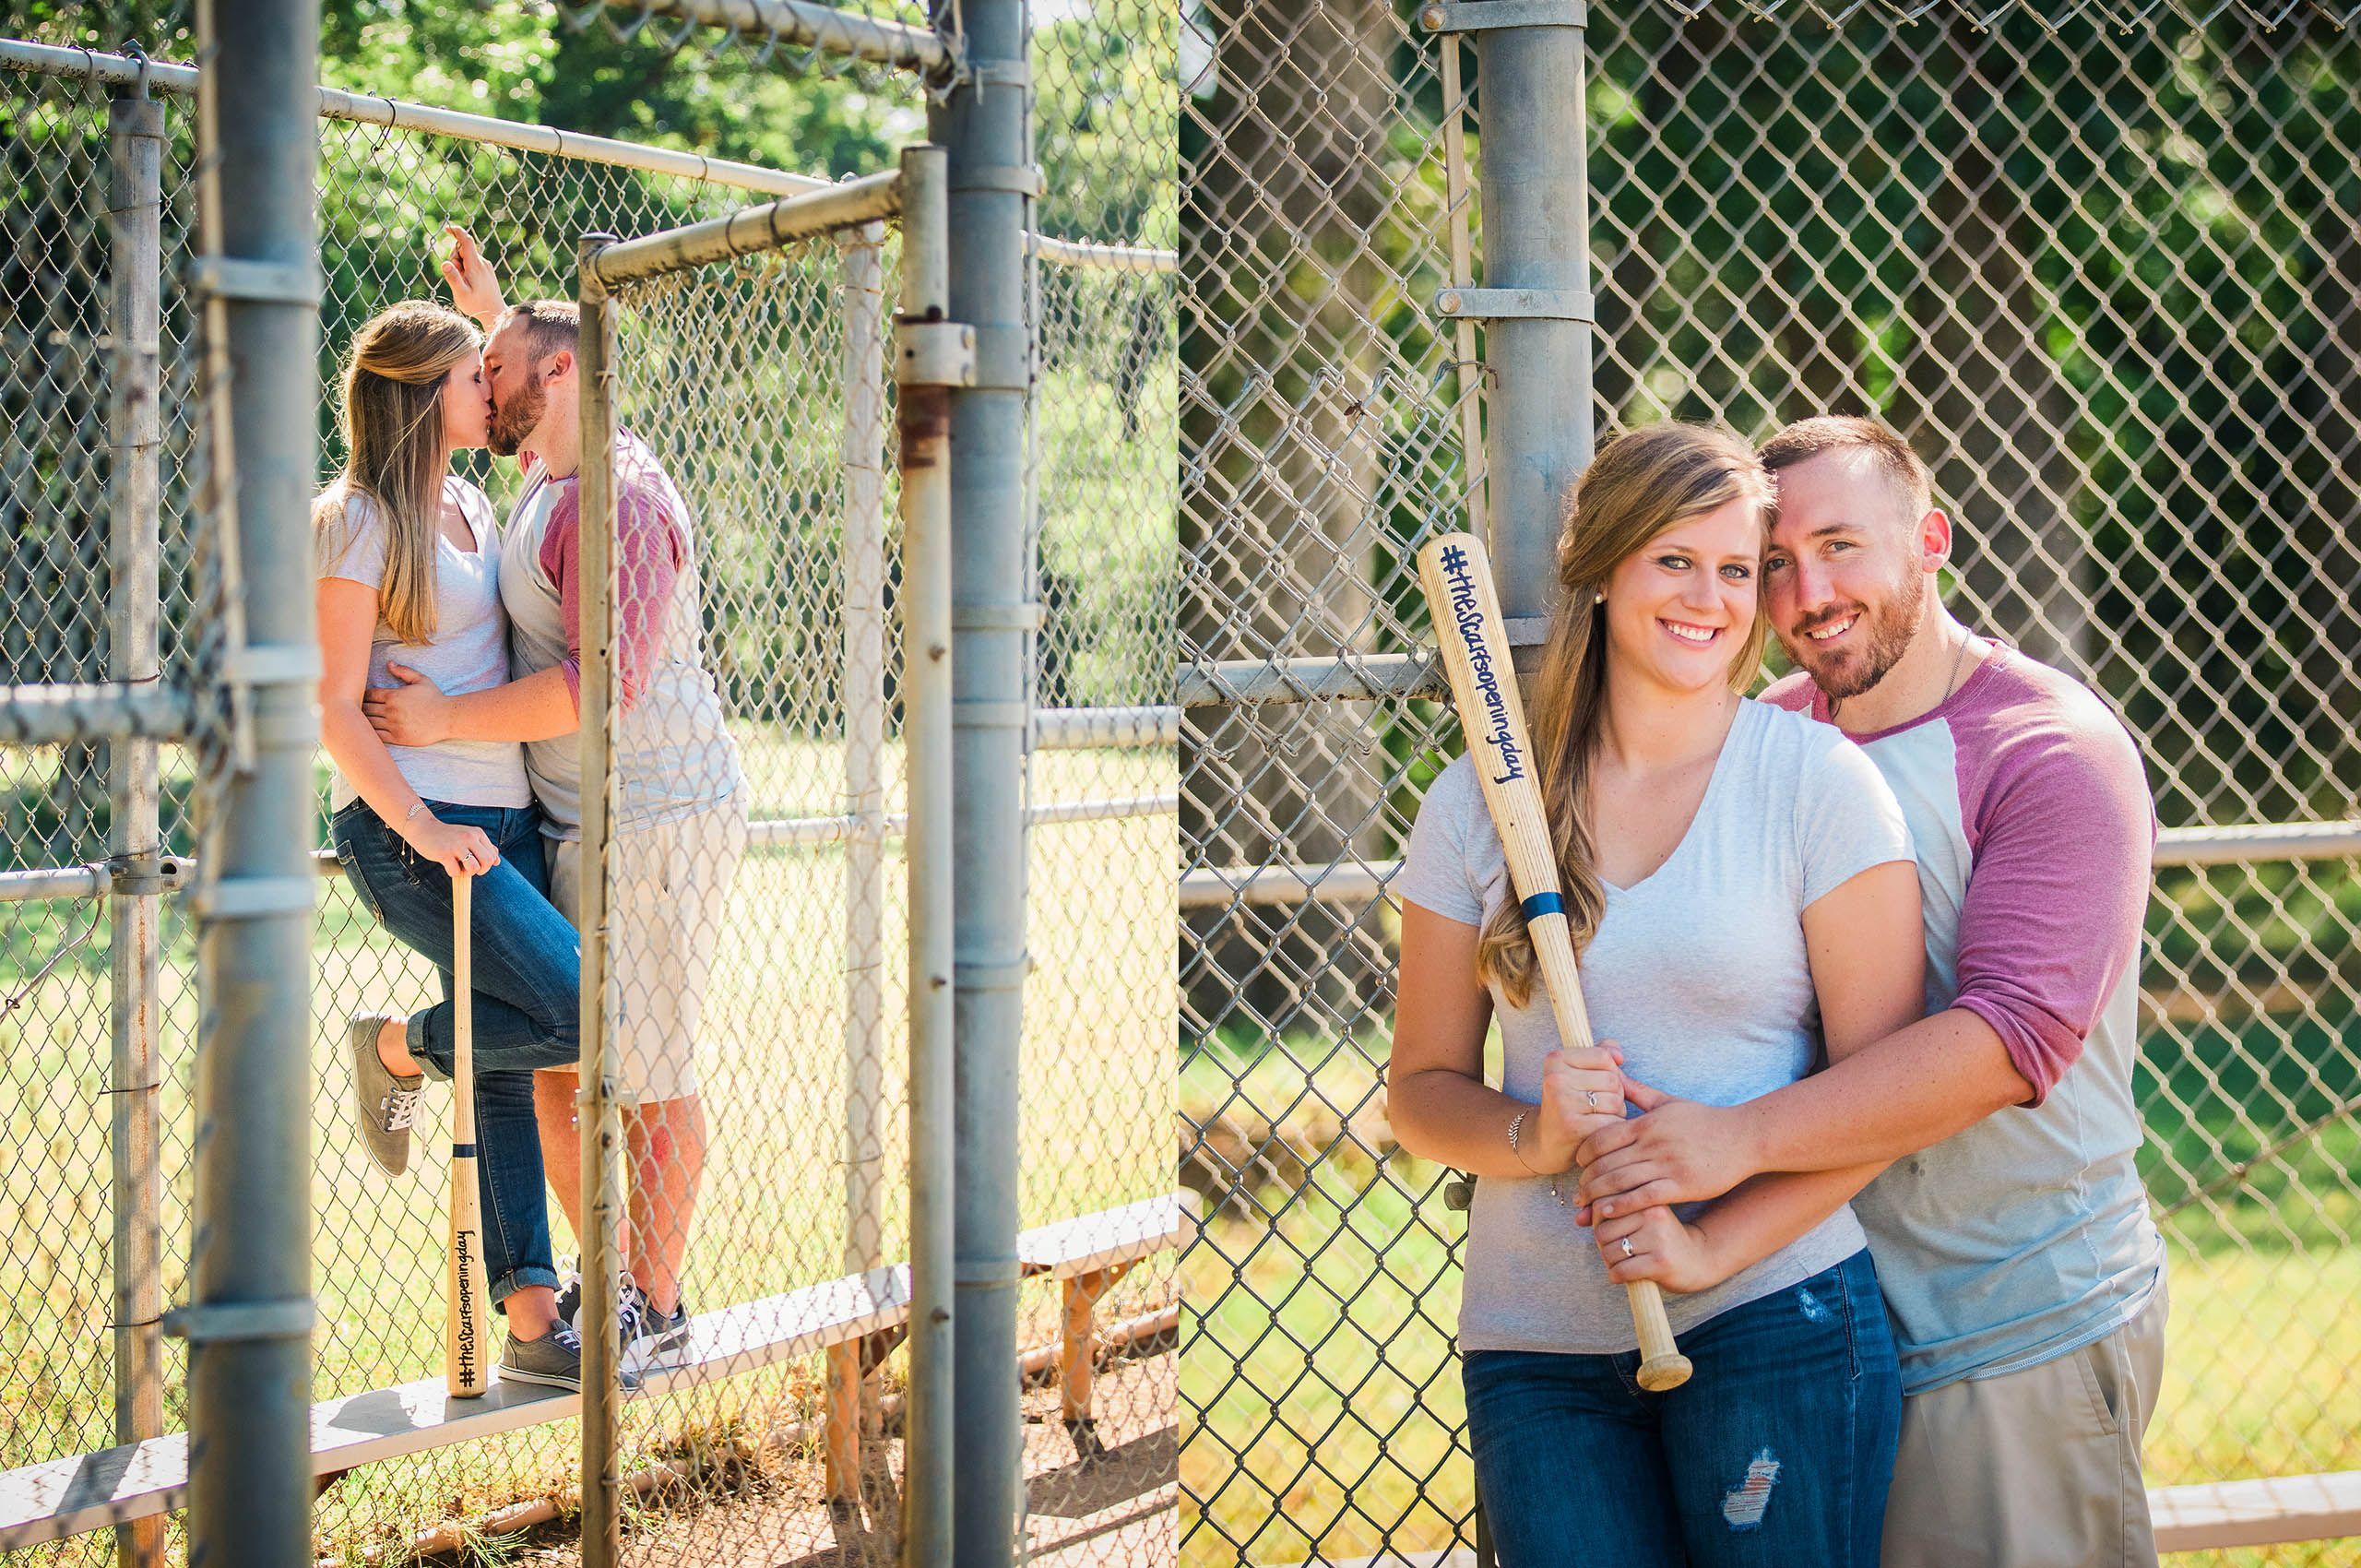 engagement_baseball2.jpg